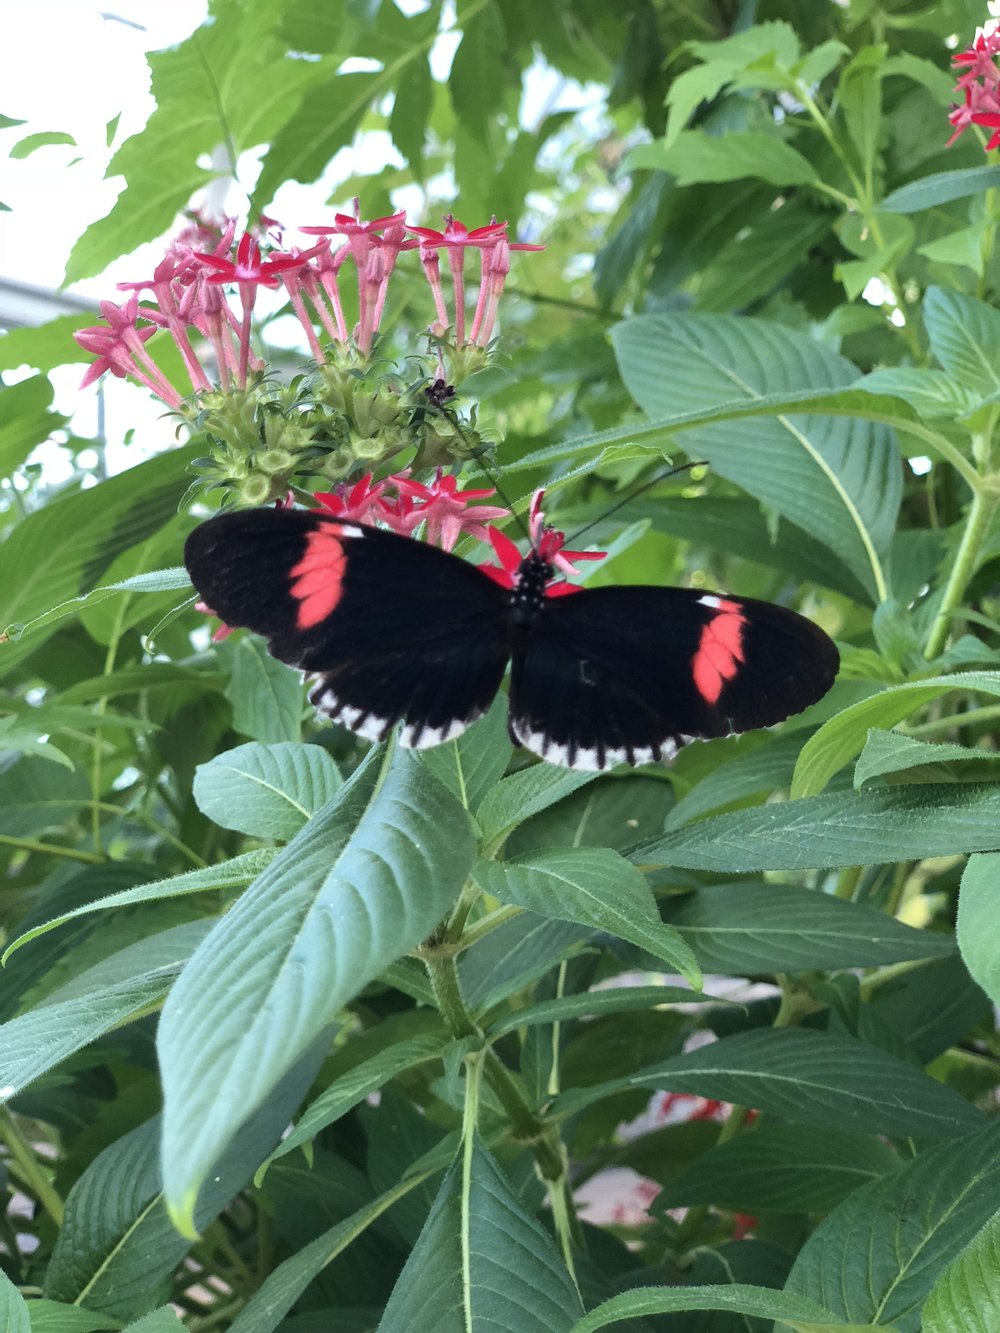 chic stripes lewis ginter butterflies